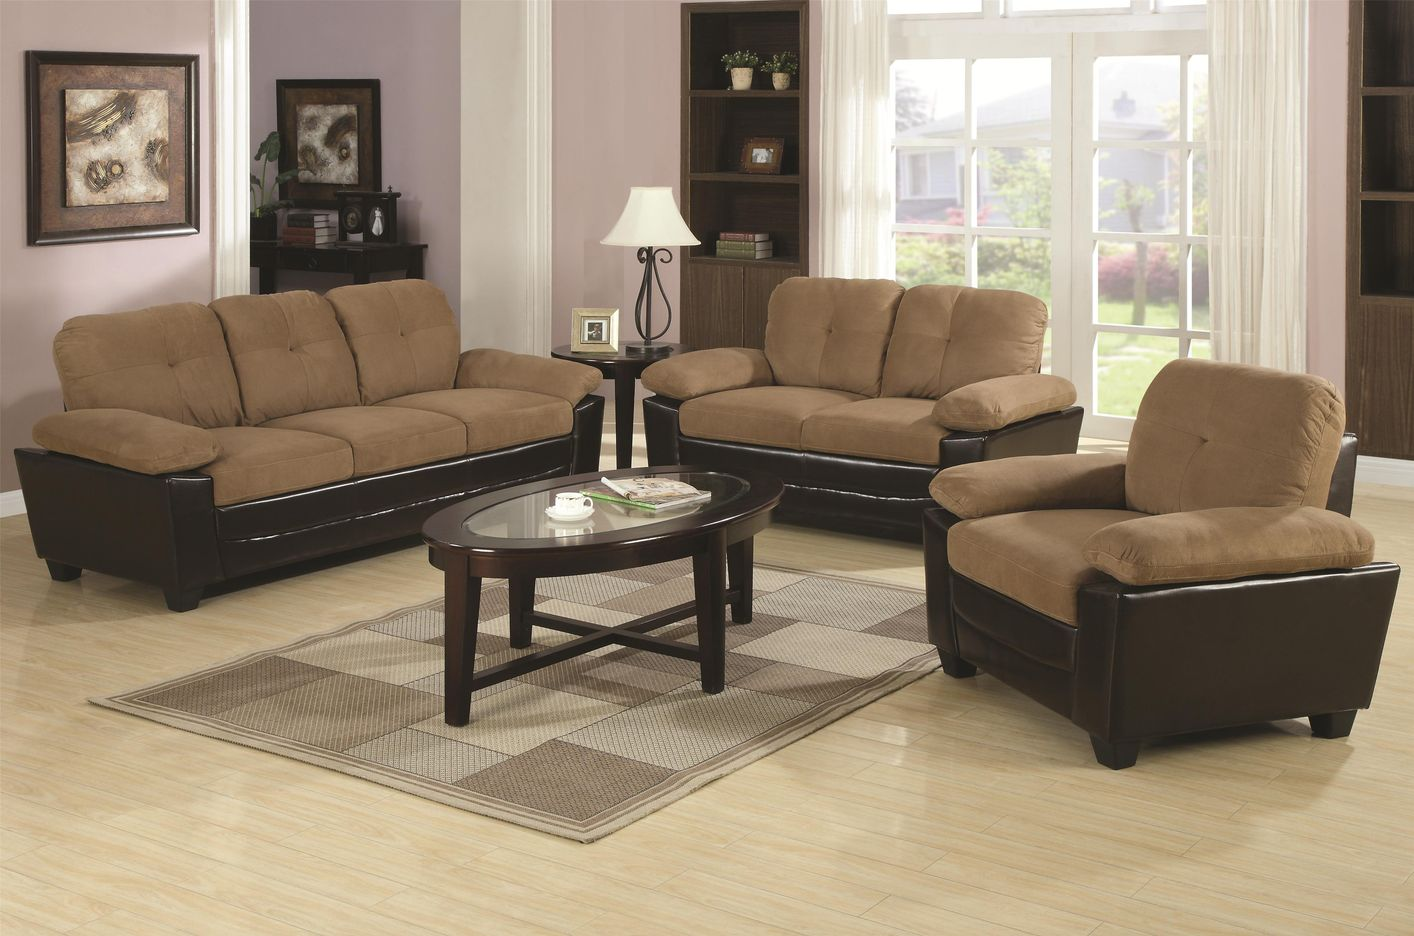 Coaster mika 502921 502922 brown microfiber sofa and loveseat set in los angeles ca Brown microfiber couch and loveseat